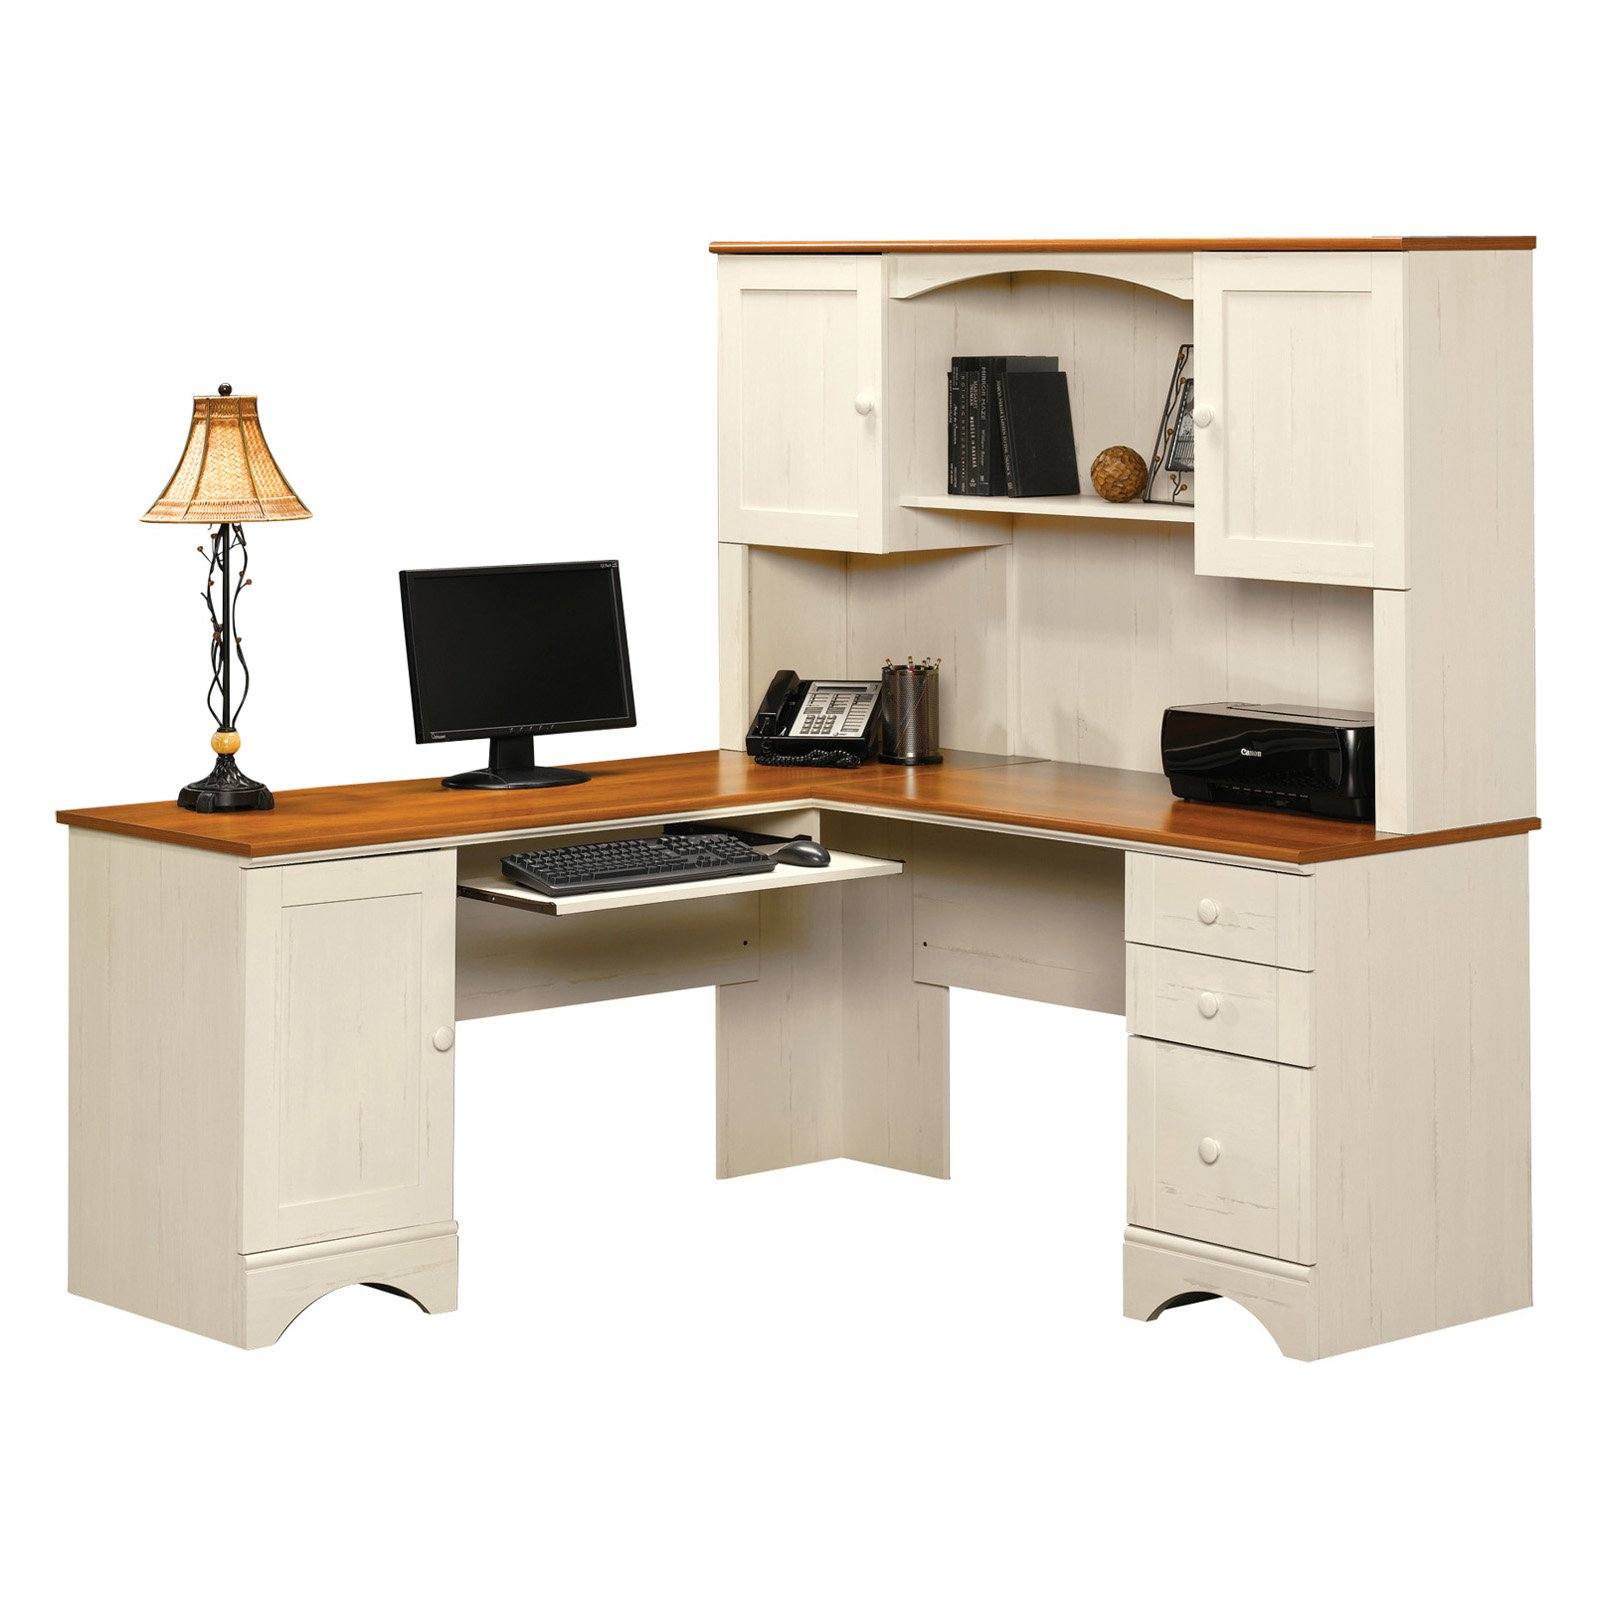 charming white wooden l shaped desk with hutch and drawers by sauder furniture for home office furniture ideas